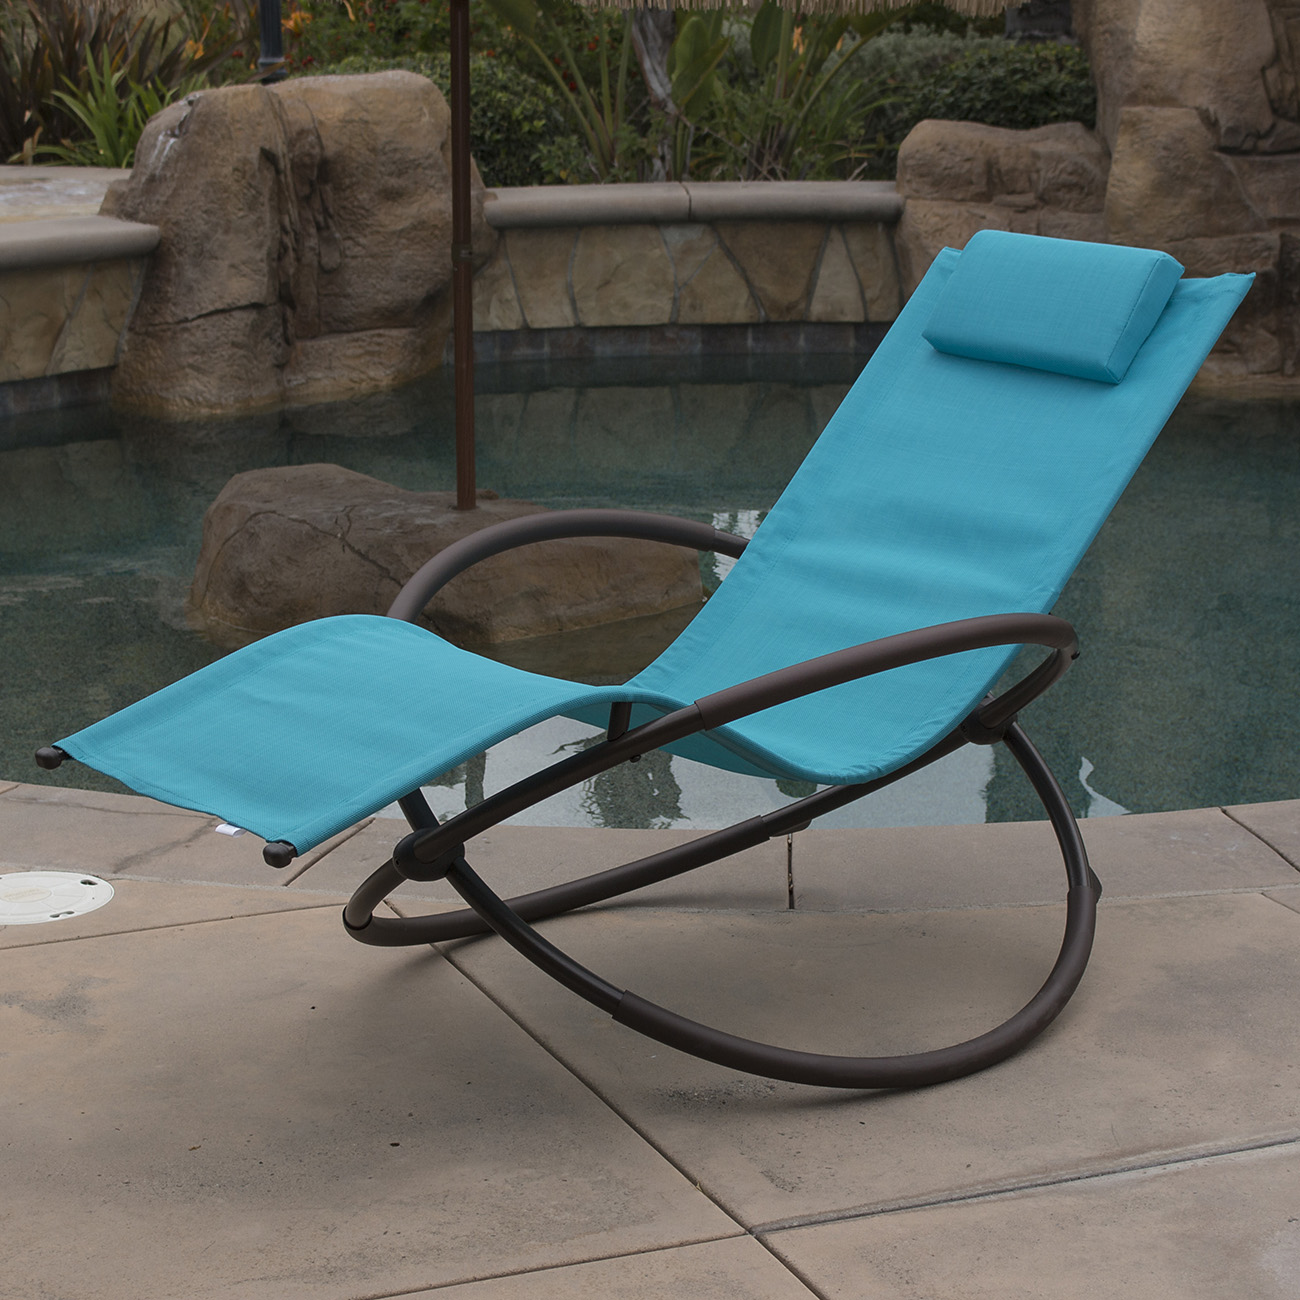 Beach Lounger Chair 7 Color Orbital Zero Anti Gravity Lounge Chair Beach Pool